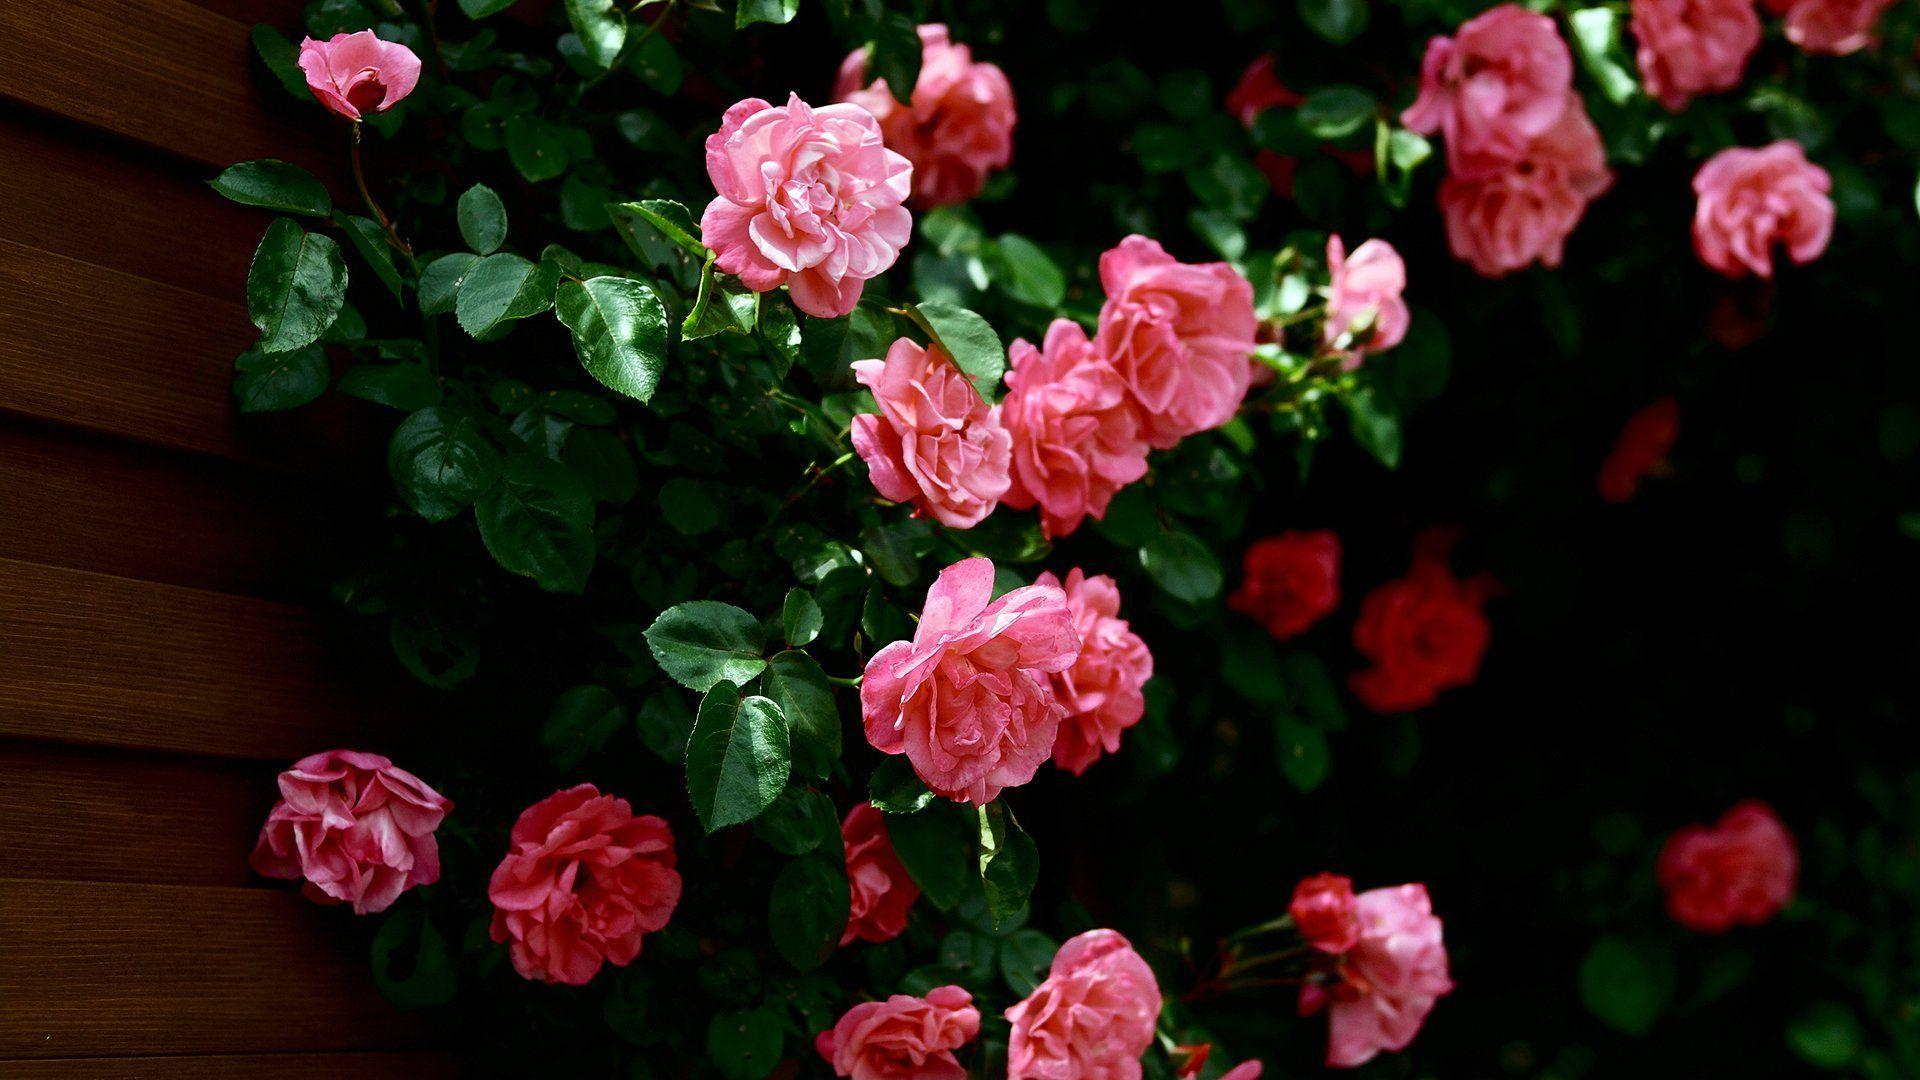 Rose Flowers Wallpapers Free Download Hd Widescreen 10 HD .